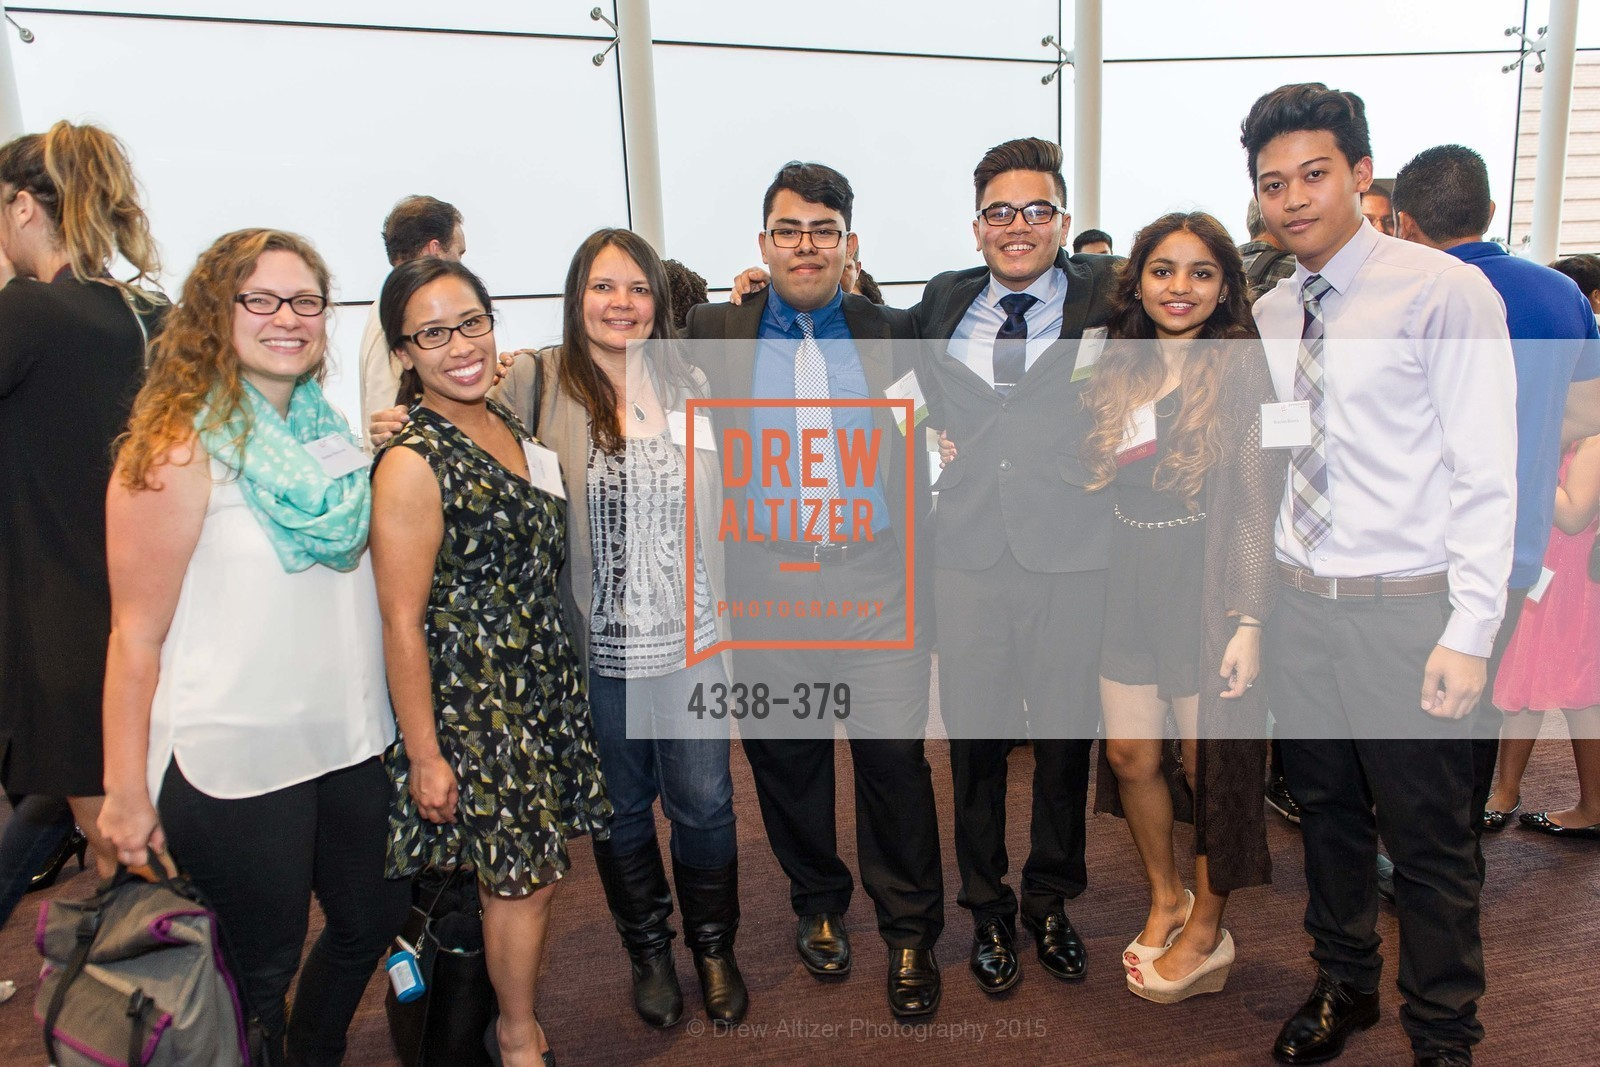 Heather Heistand, Amanda Chui, Ocsana Florescu, Mario Chavez, Jenil Shah, Genesys Works Bay Area Presents BREAKING THROUGH, St. Regis Hotel. 125 3rd St, October 14th, 2015,Drew Altizer, Drew Altizer Photography, full-service agency, private events, San Francisco photographer, photographer california